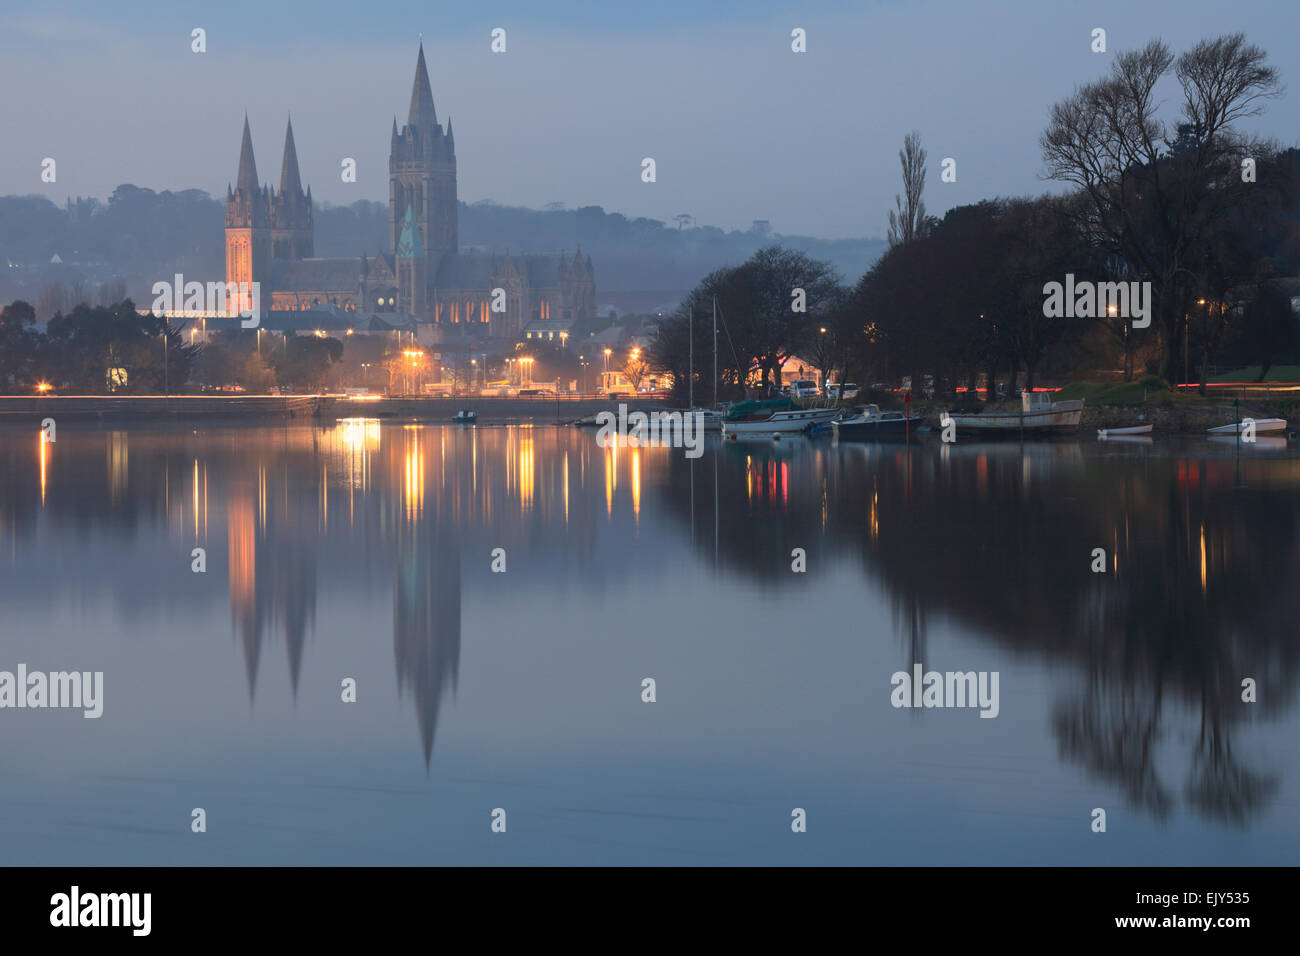 Truro Cathedral reflected in Truro River. - Stock Image